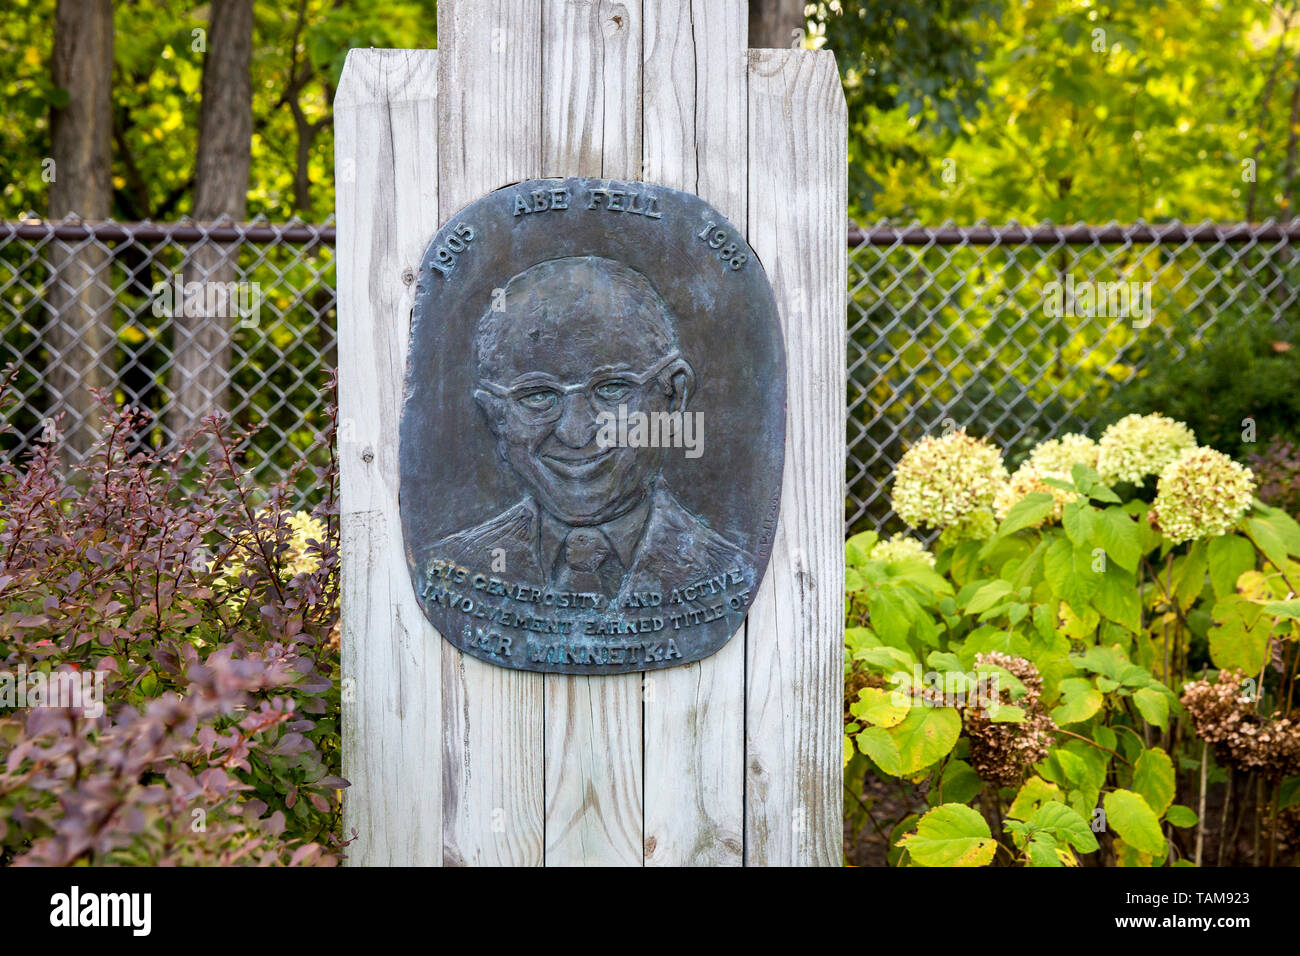 Bronze plaque in memory of local businessman Abe Fell (1905-1988) in Winnetka, Illinois.  Statement: His generosity and active involvement earned titl - Stock Image